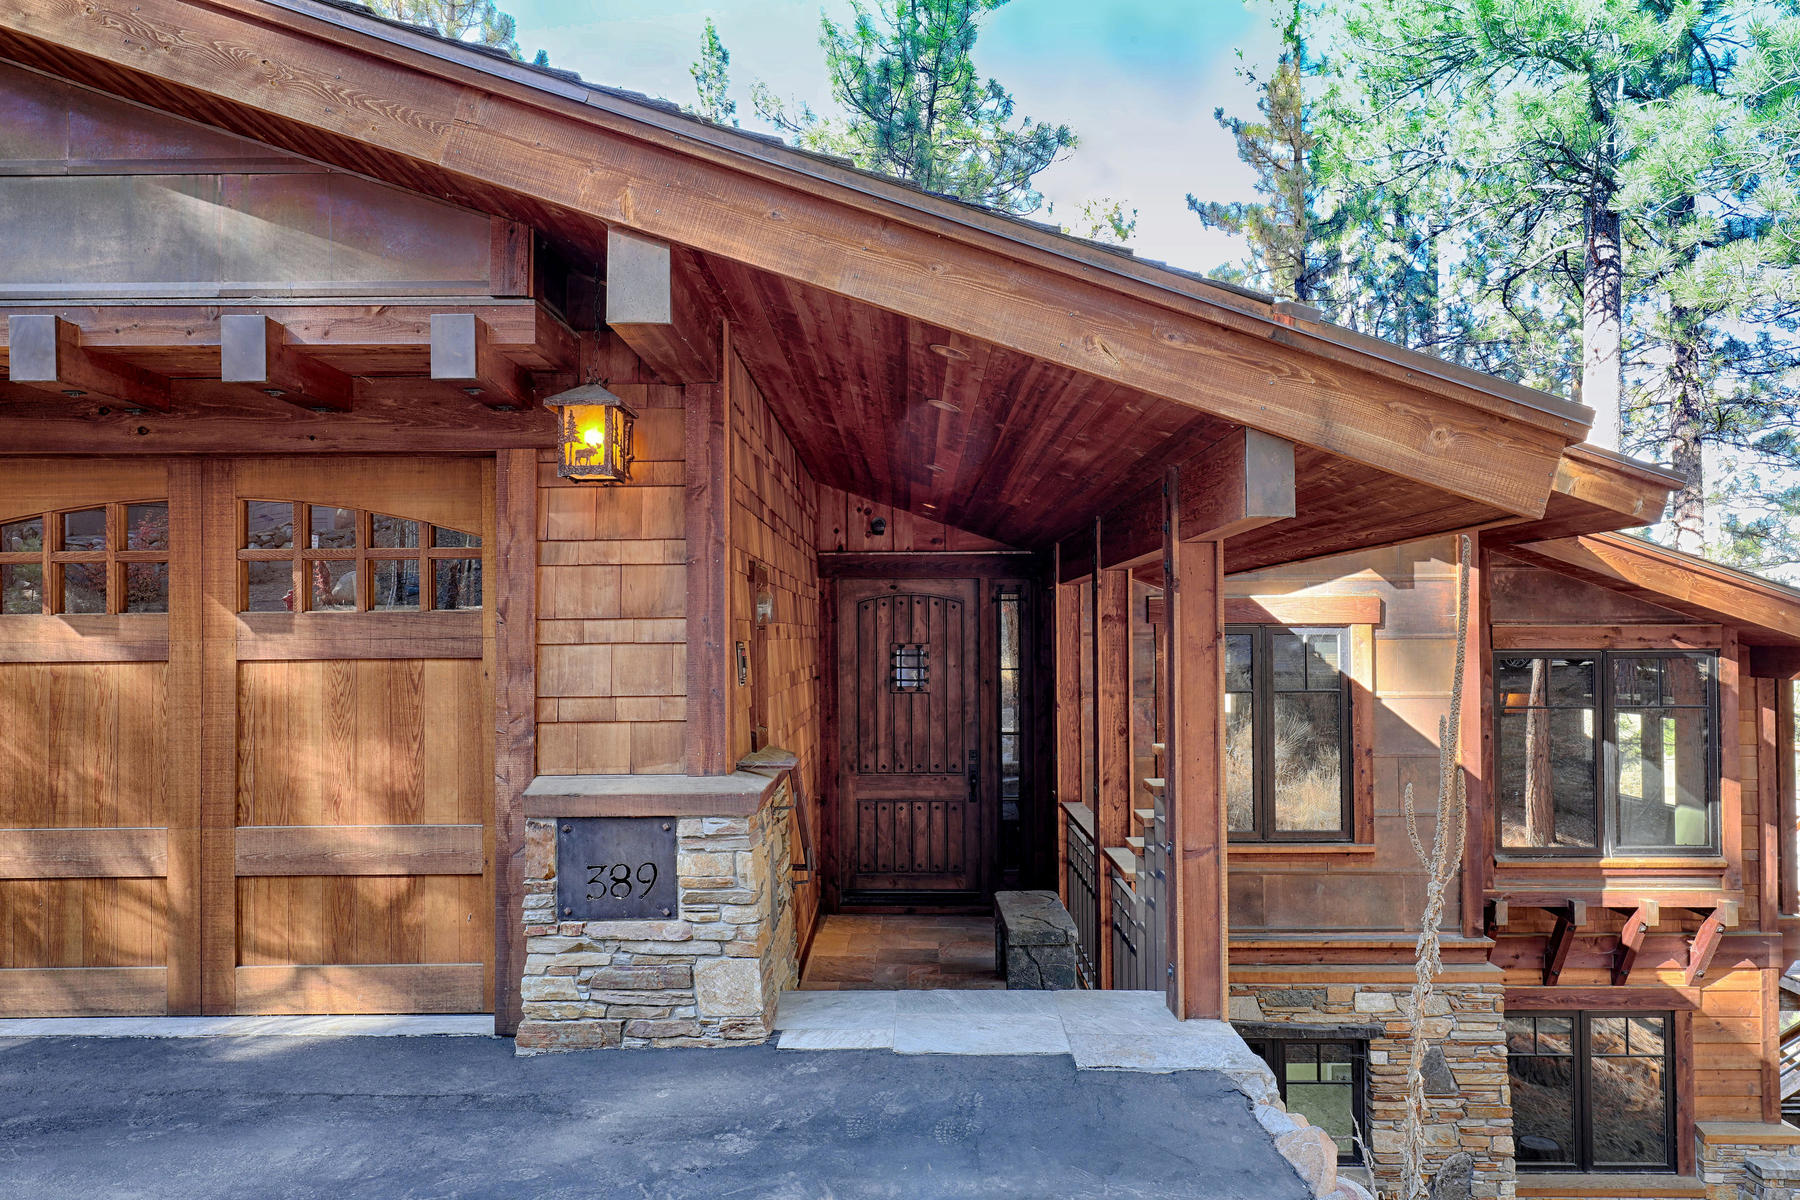 Property for Active at 389 Skidder Trail, Truckee Ca 96161 389 Skidder Trail Truckee, California 96161 United States